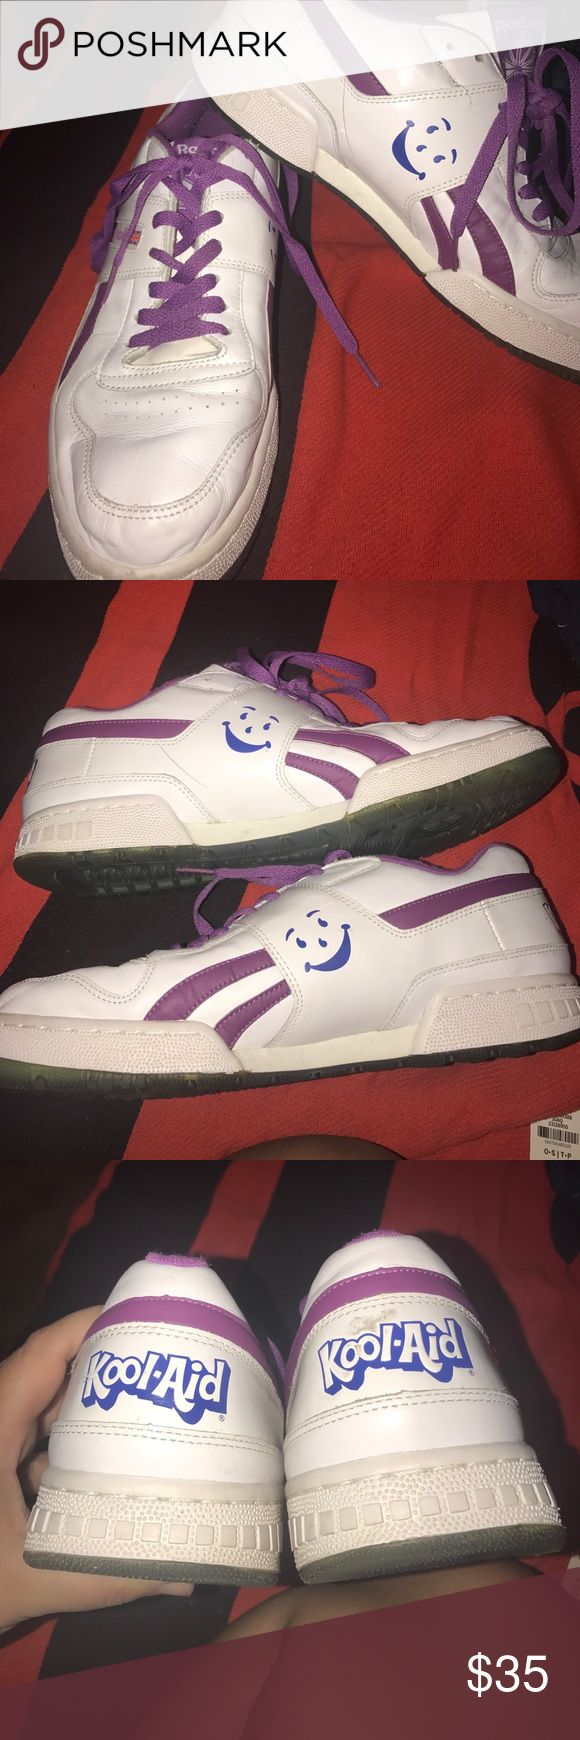 🍇RARE🍇 Grape Scented Kool-Aid Reeboks These are gentler used grape scented sneakers and they still smell like grape slightly! They are super comfortable! I wore them a total of seven times and got so many compliments! These are definitely a statement piece!! They are a men's 9.5 but a women's 11.5! Reebok Shoes Sneakers